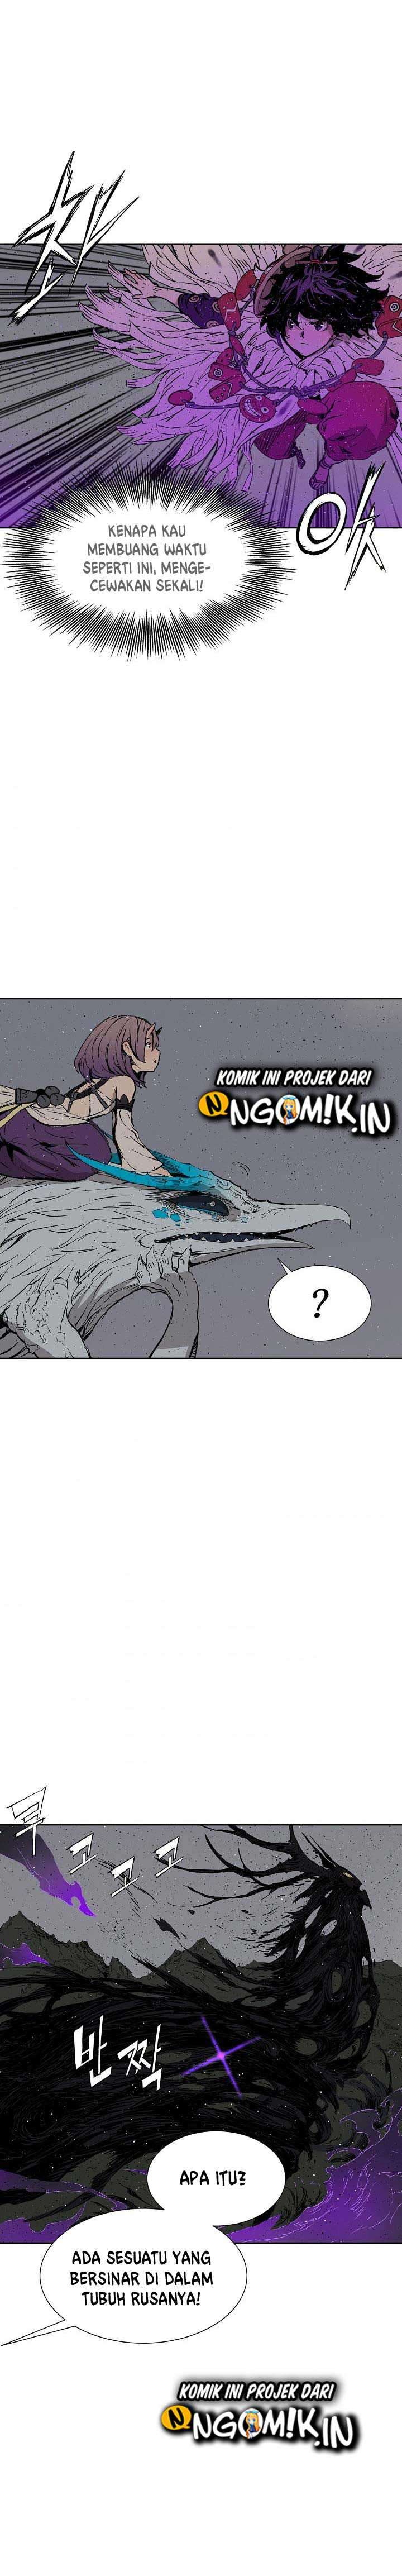 Sword Sheath's Child Chapter 55 Bahasa Indonesia page 29